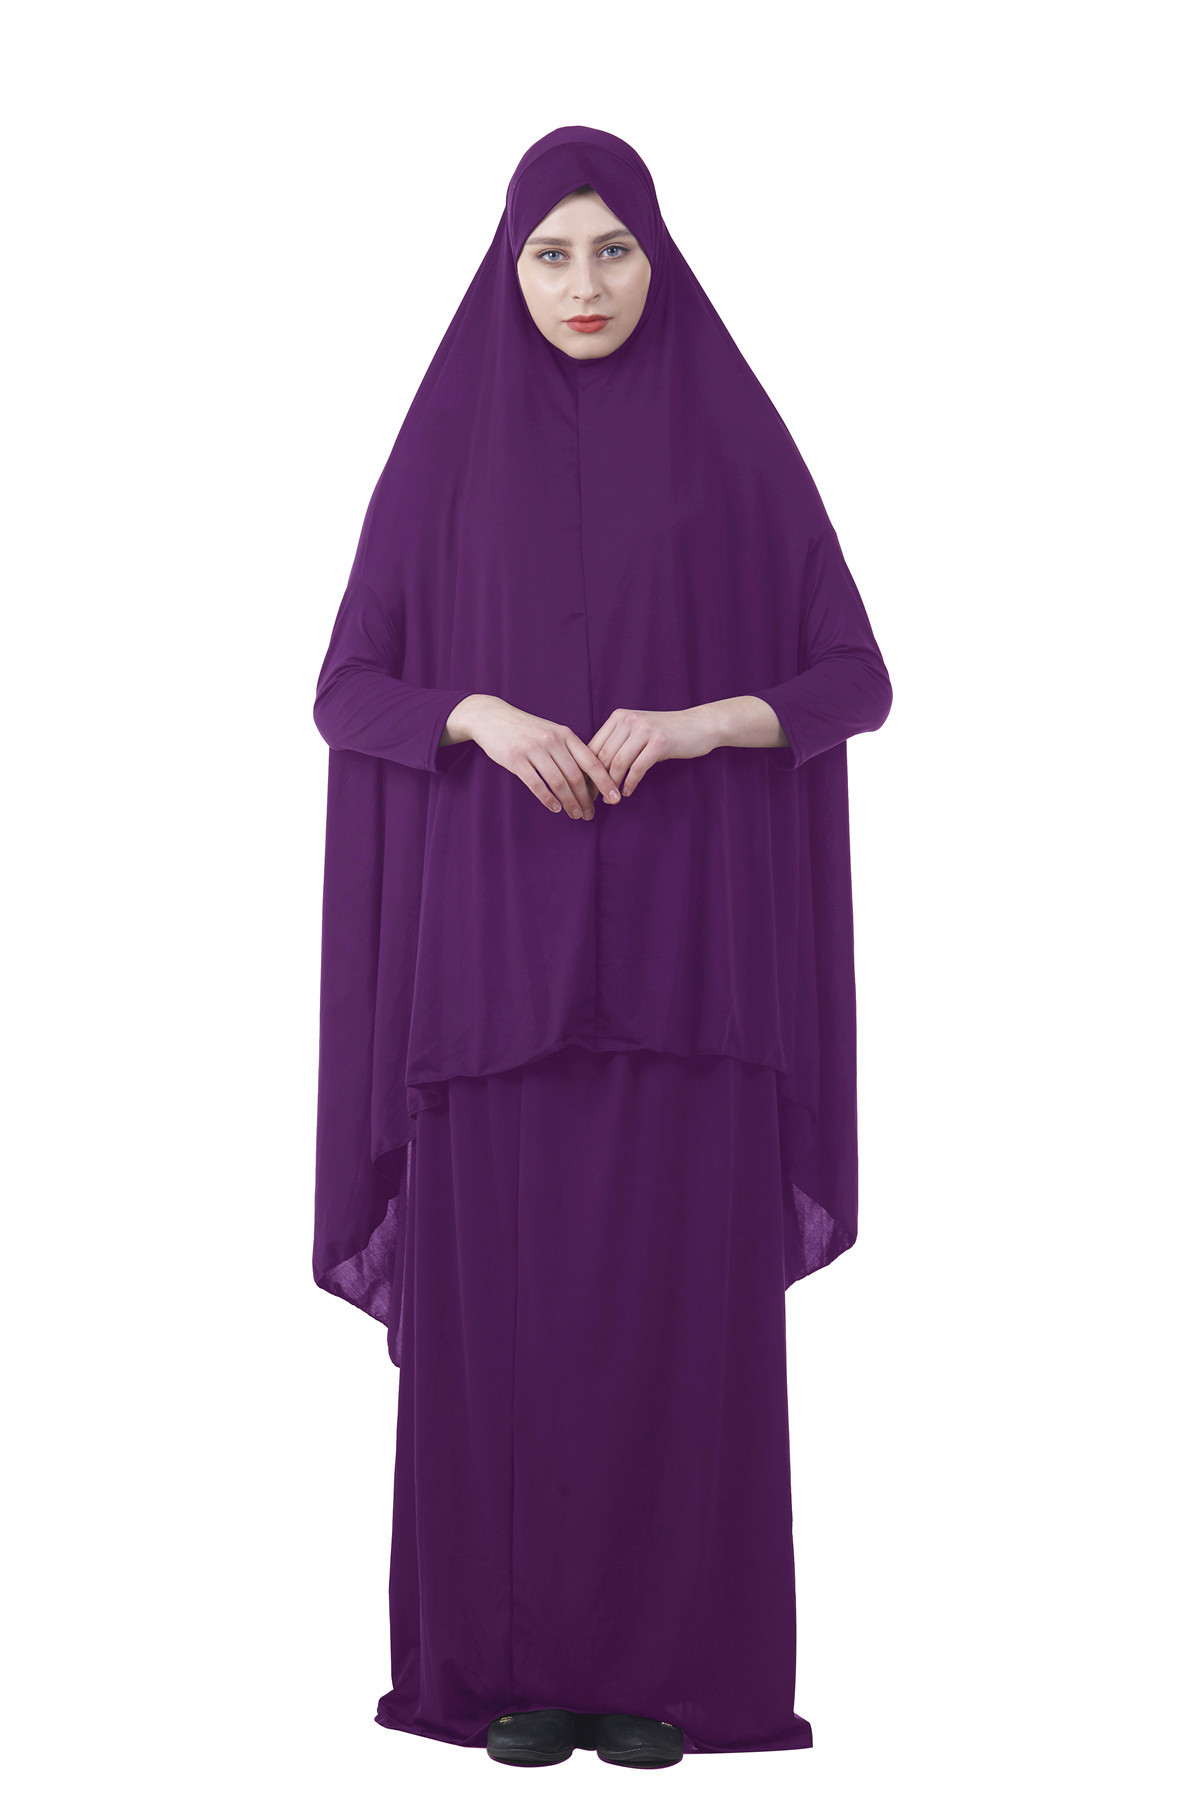 Image 5 - Formal Muslim Prayer Garment Sets Women Hijab Dress Abaya Islamic